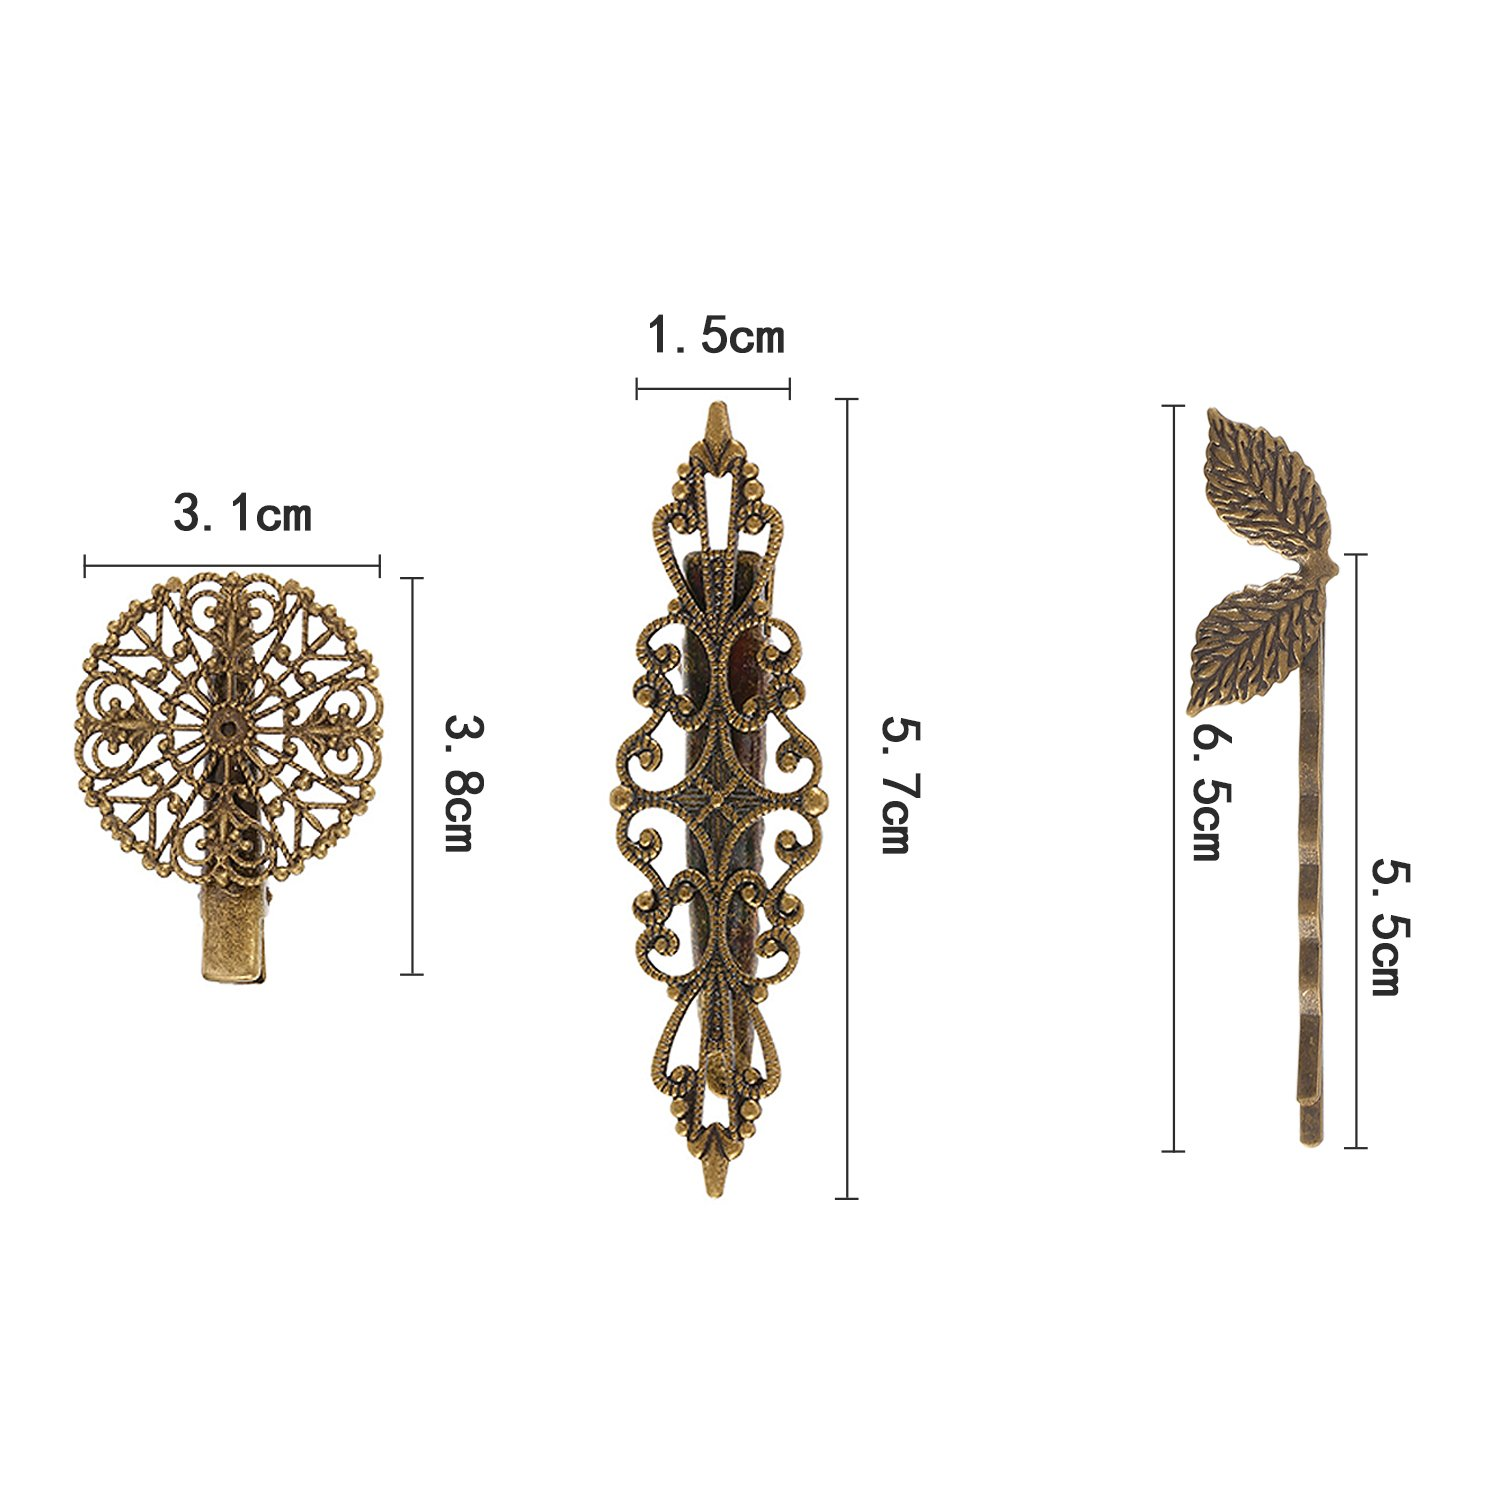 BBTO 22 Pieces Vintage Hair Clips Barrettes Bronze Leaf Bobby Pin Flower Butterfly Heart Hair Clip for Girls and Women, Mix Styles by BBTO (Image #2)